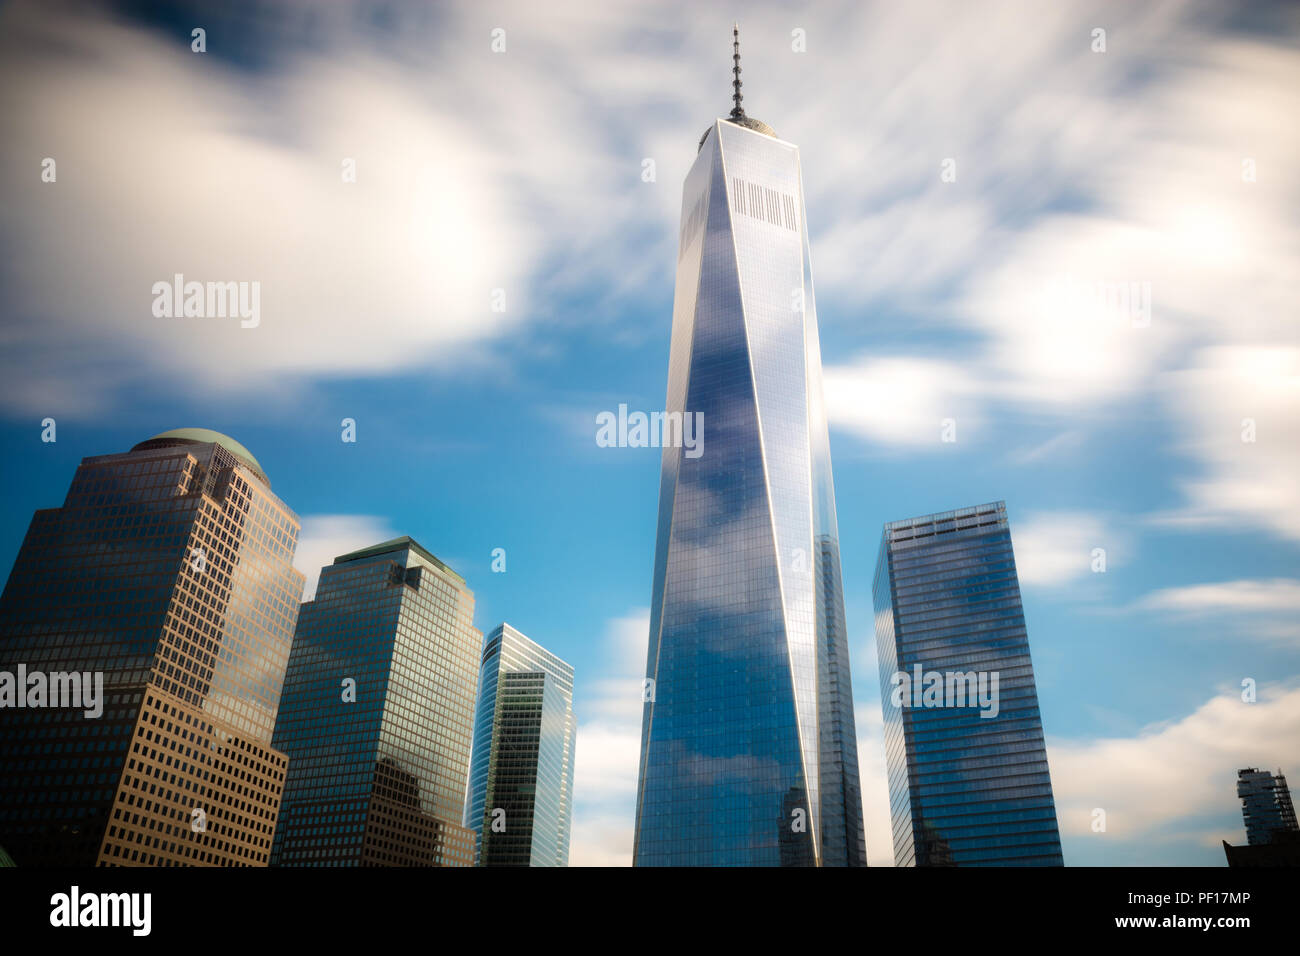 Fast moving clouds over One WTC and the 9/11 memorial in Lower Manhattan, New York City. - Stock Image